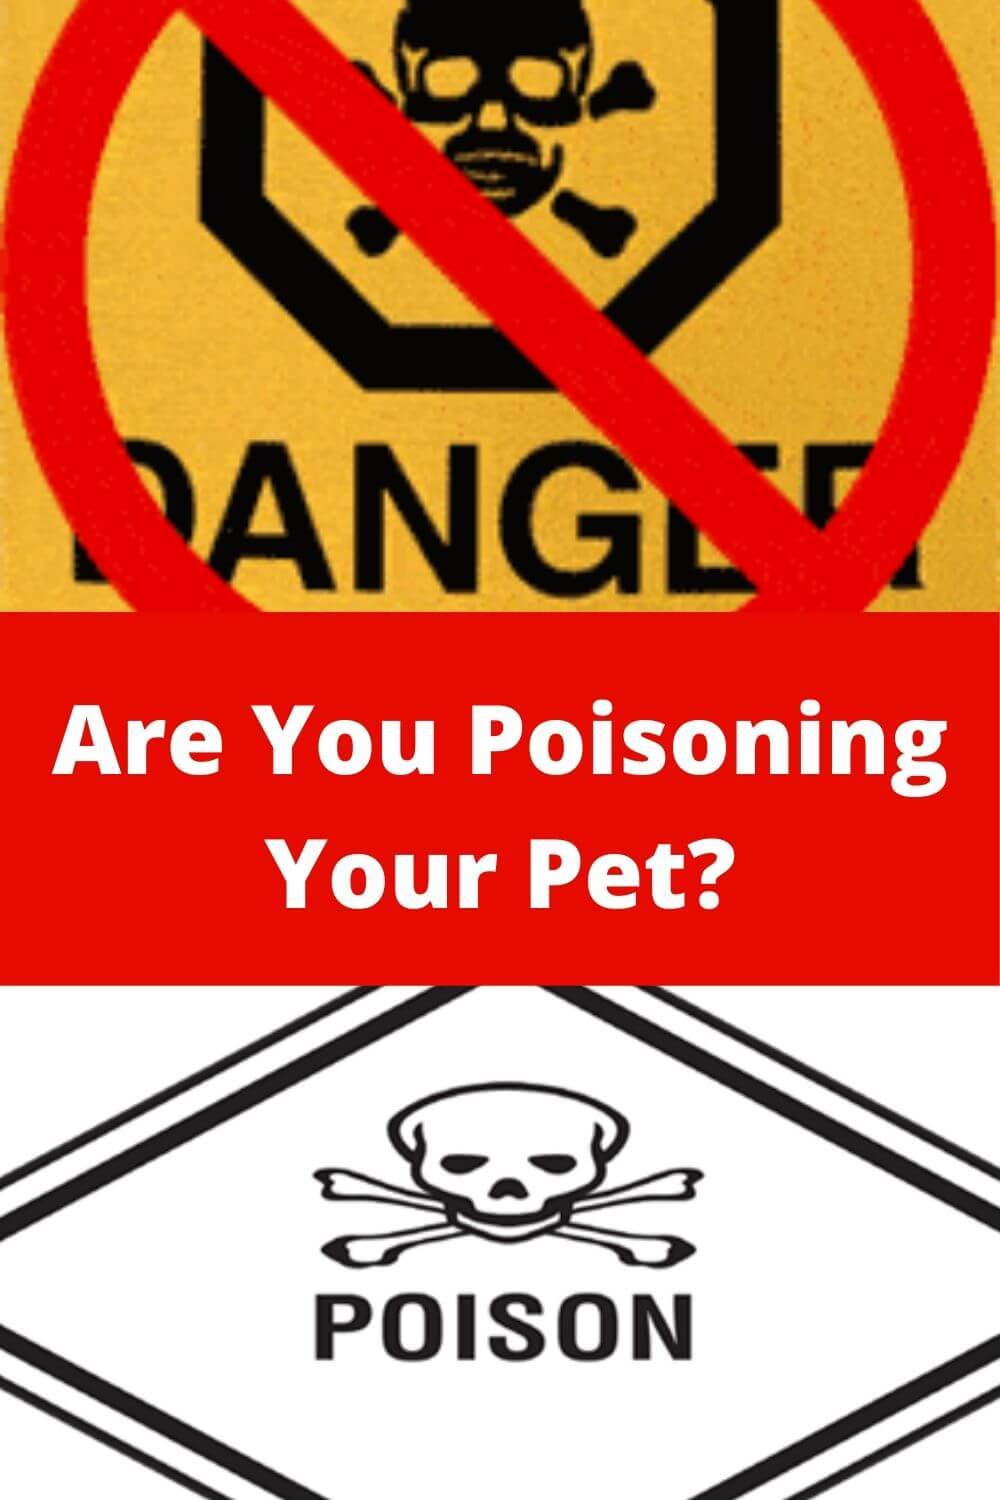 Are You Poisoning Your Pet?